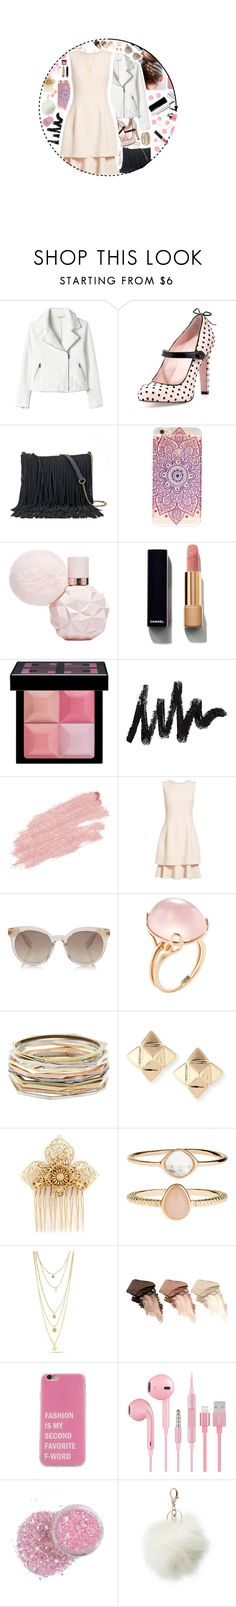 """Untitled #312"" by kate-reads on Polyvore featuring RED Valentino, SONOMA Goods for Life, Chanel, Givenchy, Jane Iredale, Oscar de la Renta, Goshwara, Kendra Scott, Valentino and Miriam Haskell"